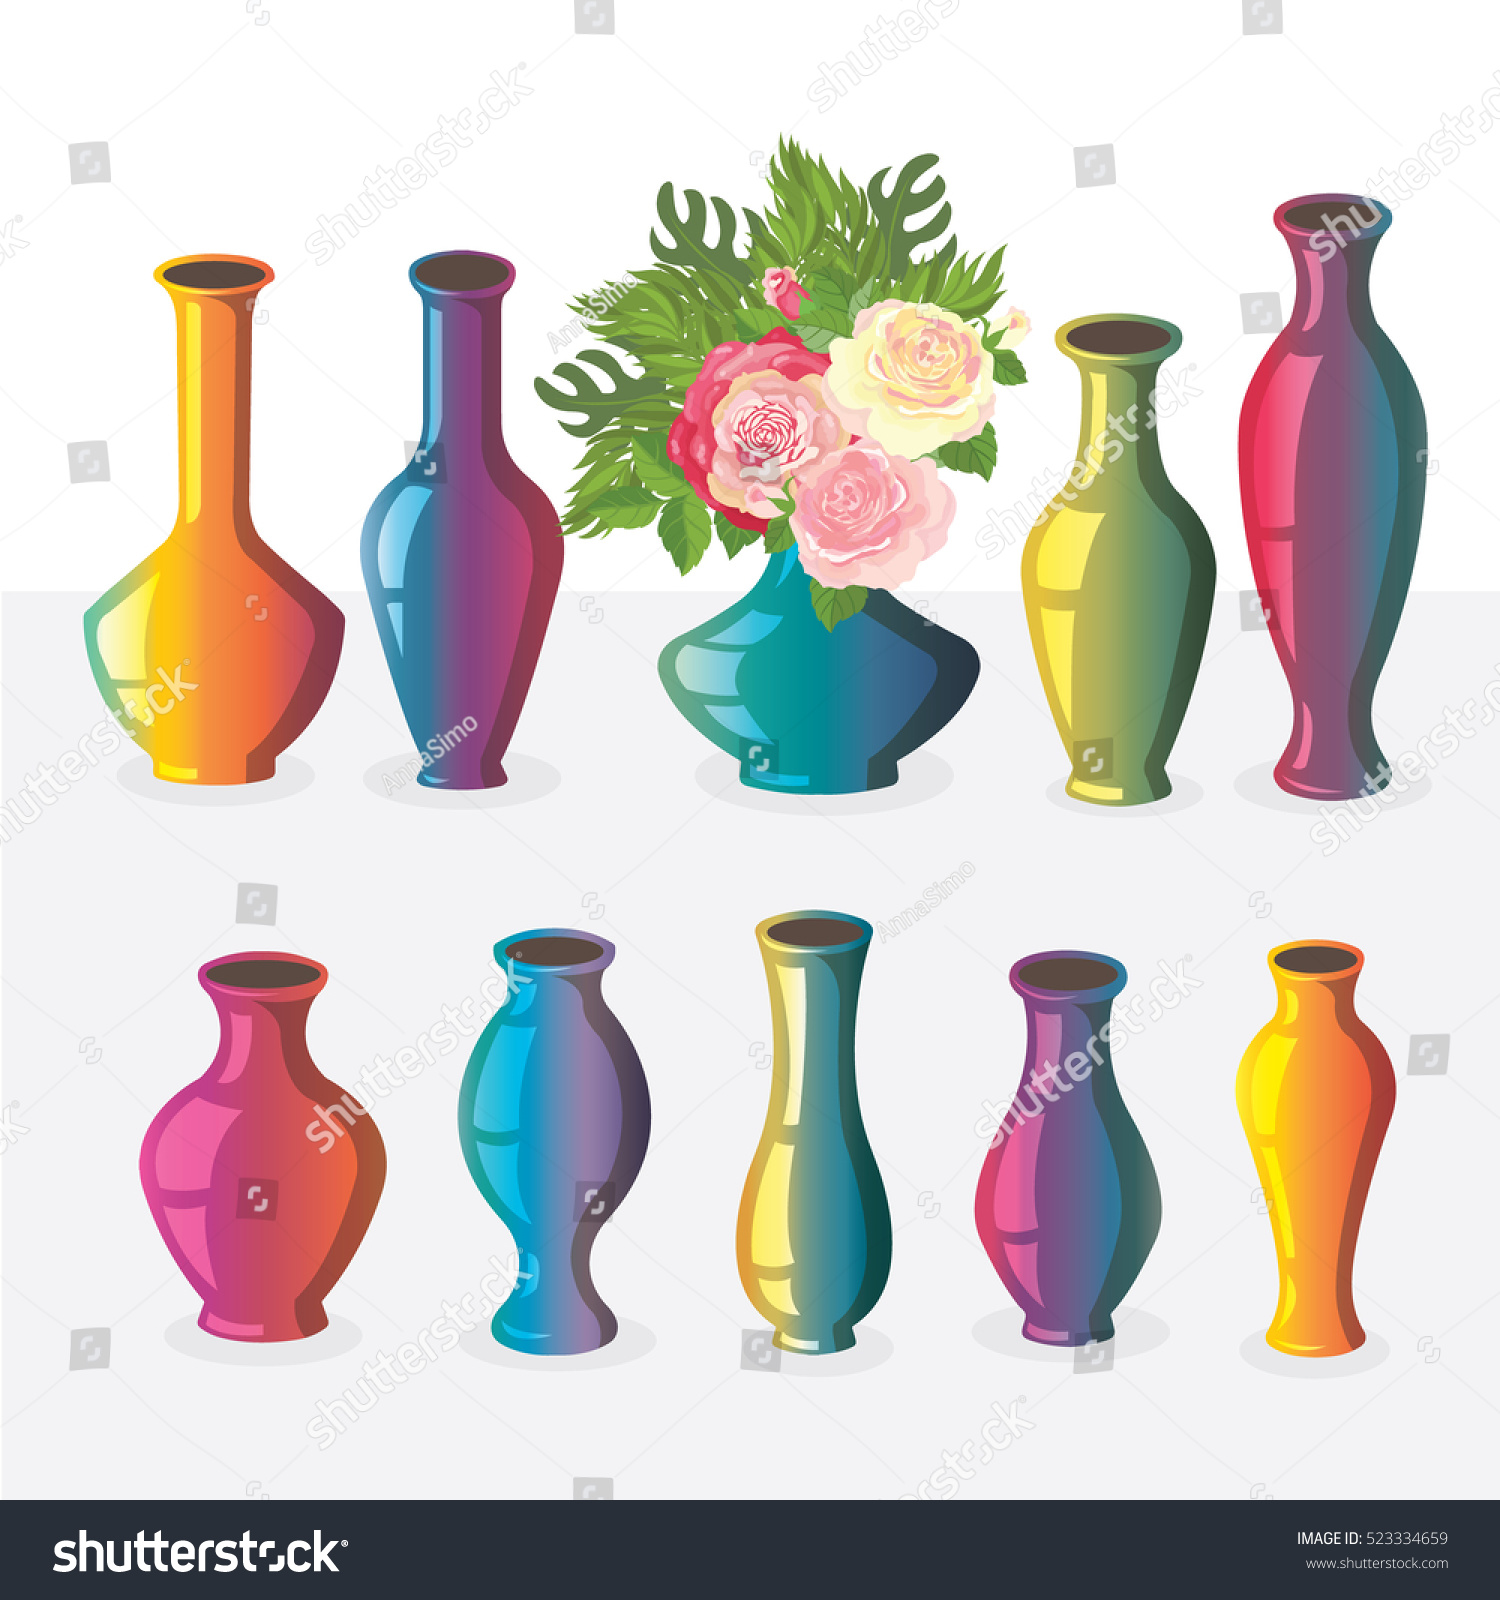 Collection vases icons different gradient colors stock vector collection of vases icons with different gradient colors and shapes reviewsmspy